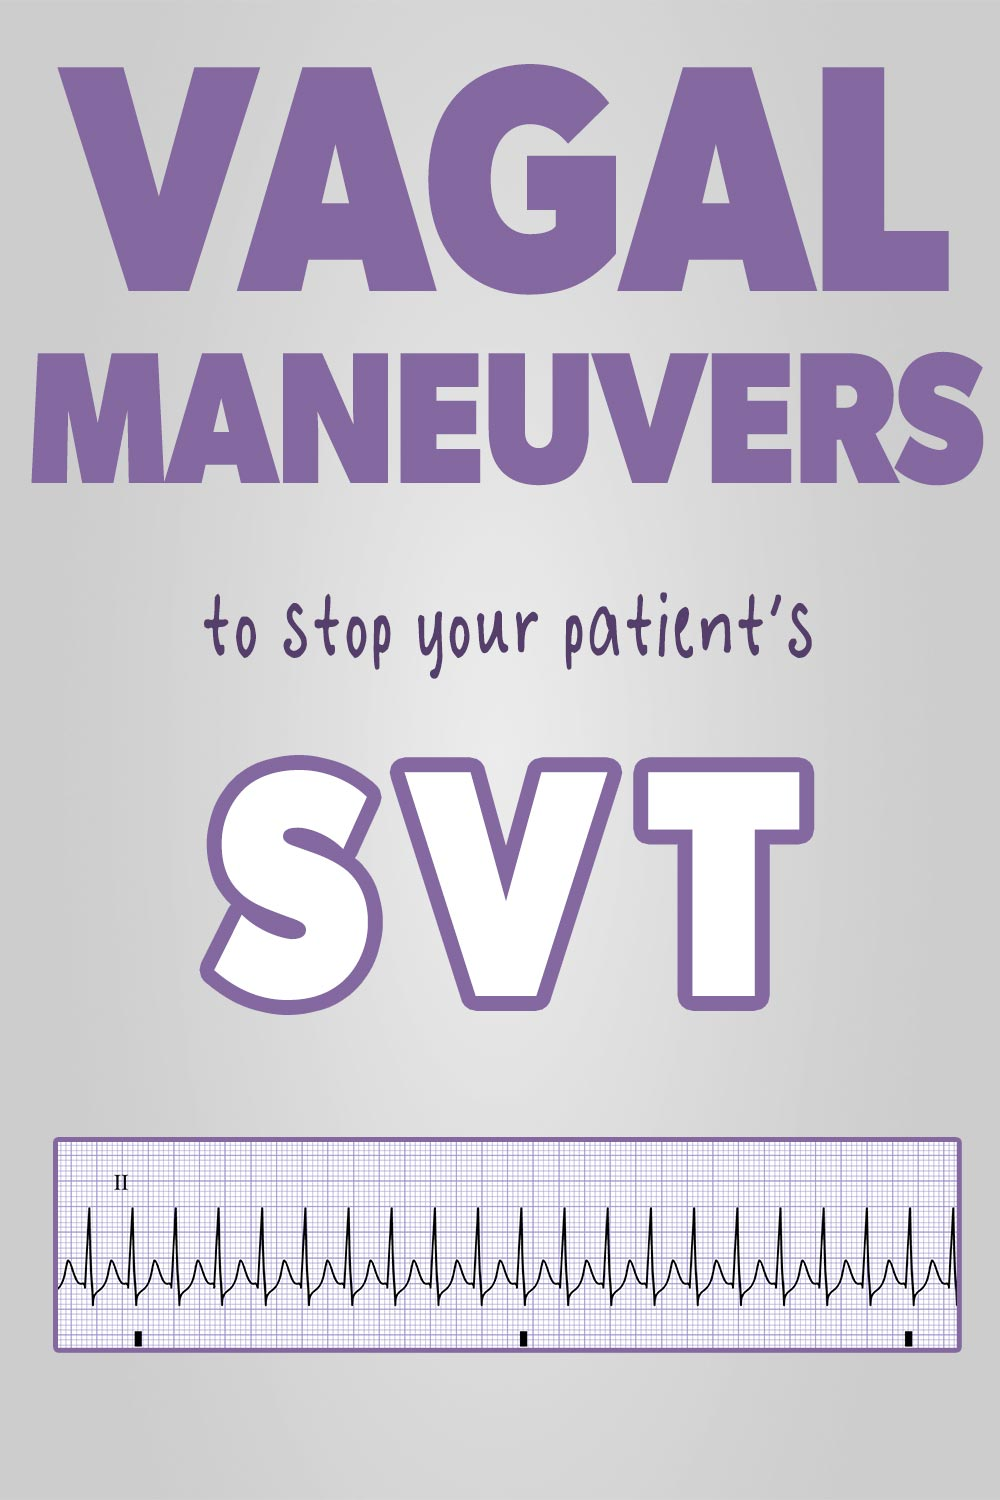 Vagal maneuvers for SVT Pin